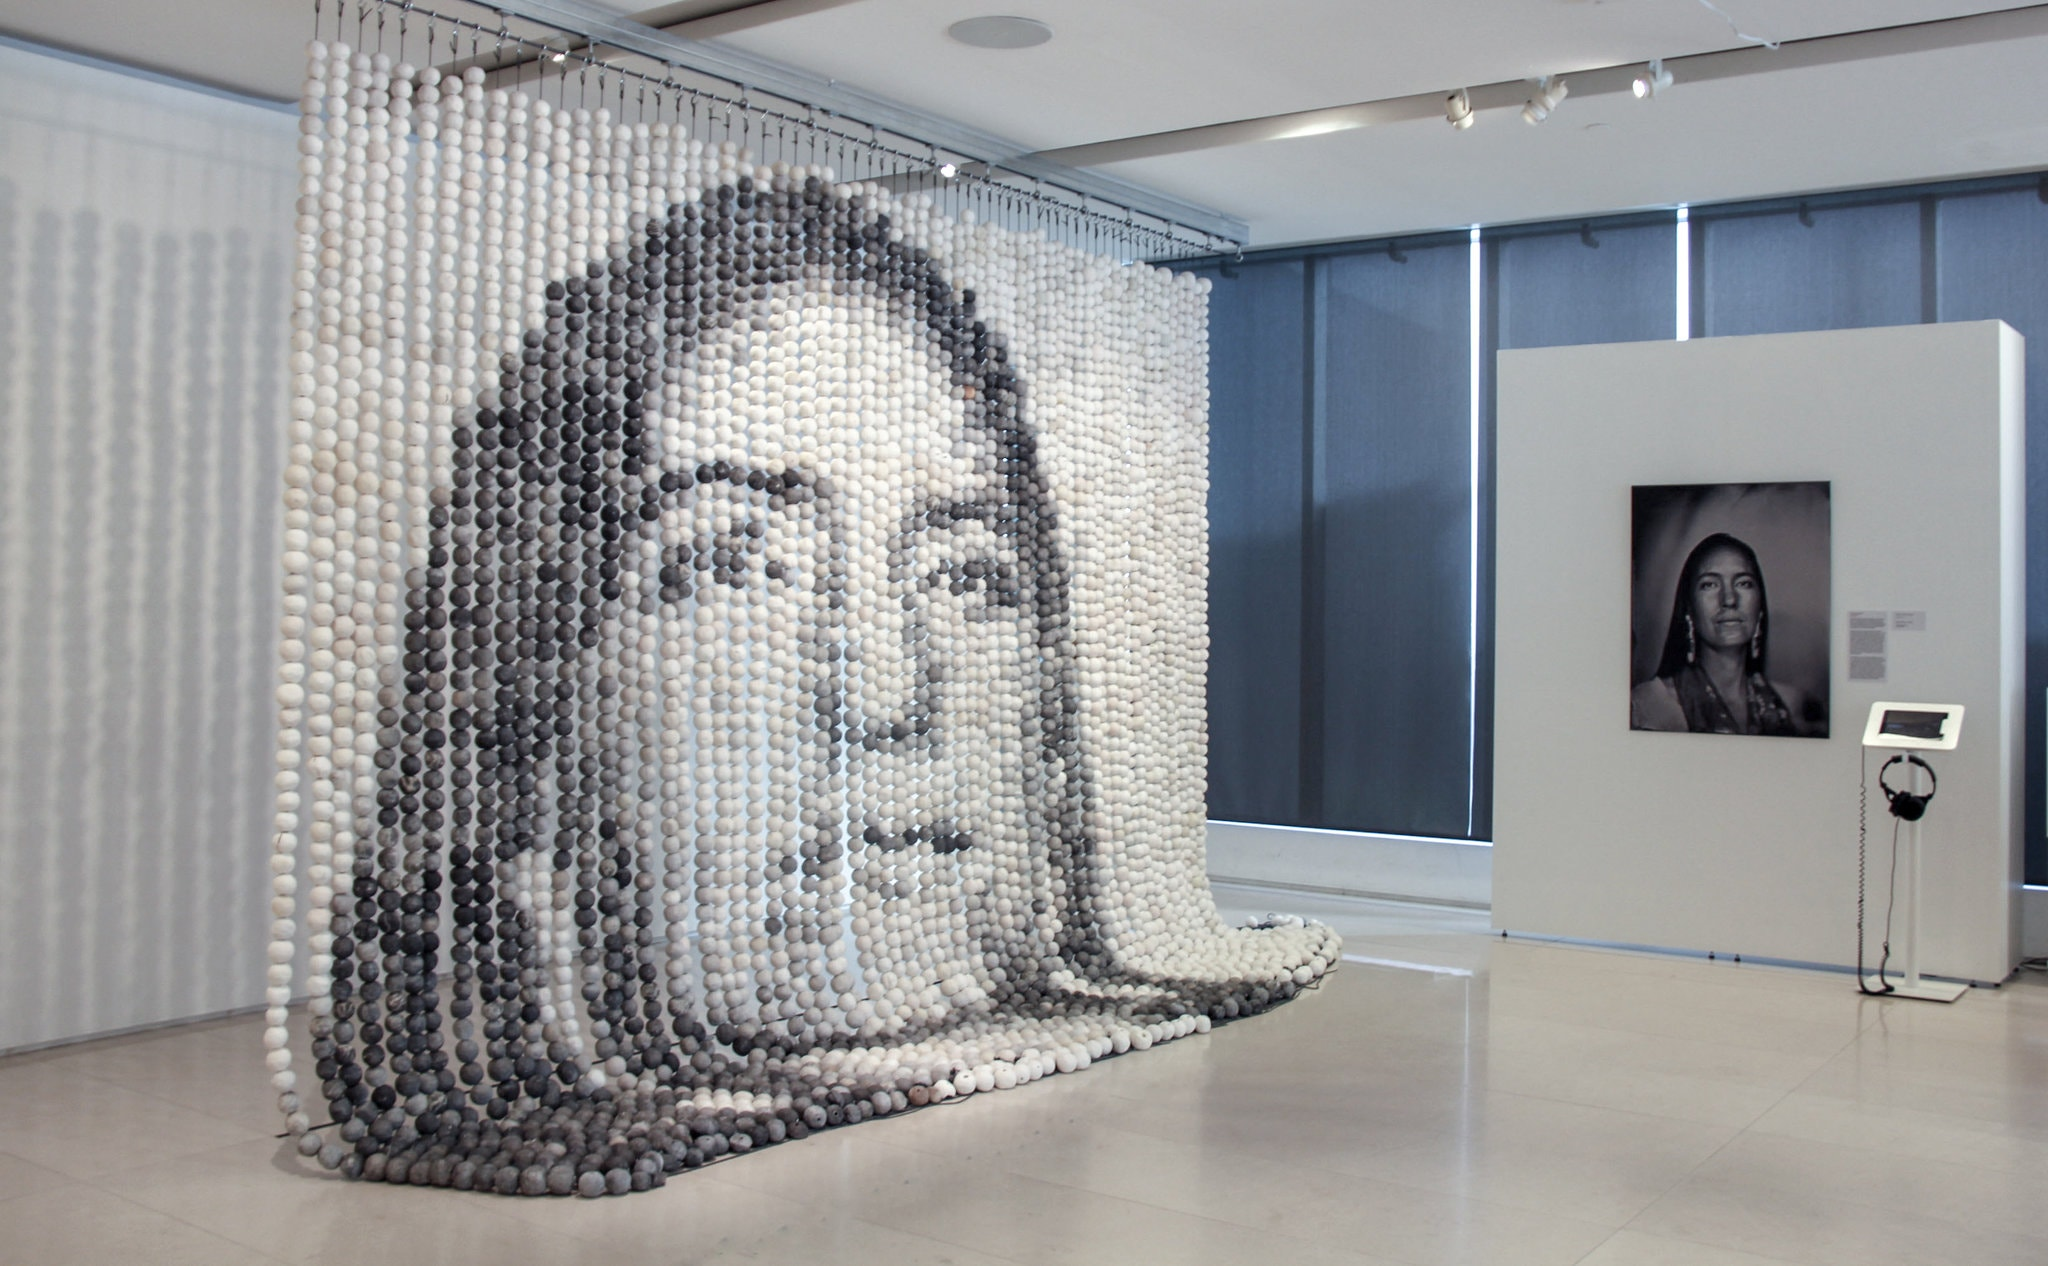 Ceramic bead curtain forming an image of a woman's face, next to the original photo of the woman